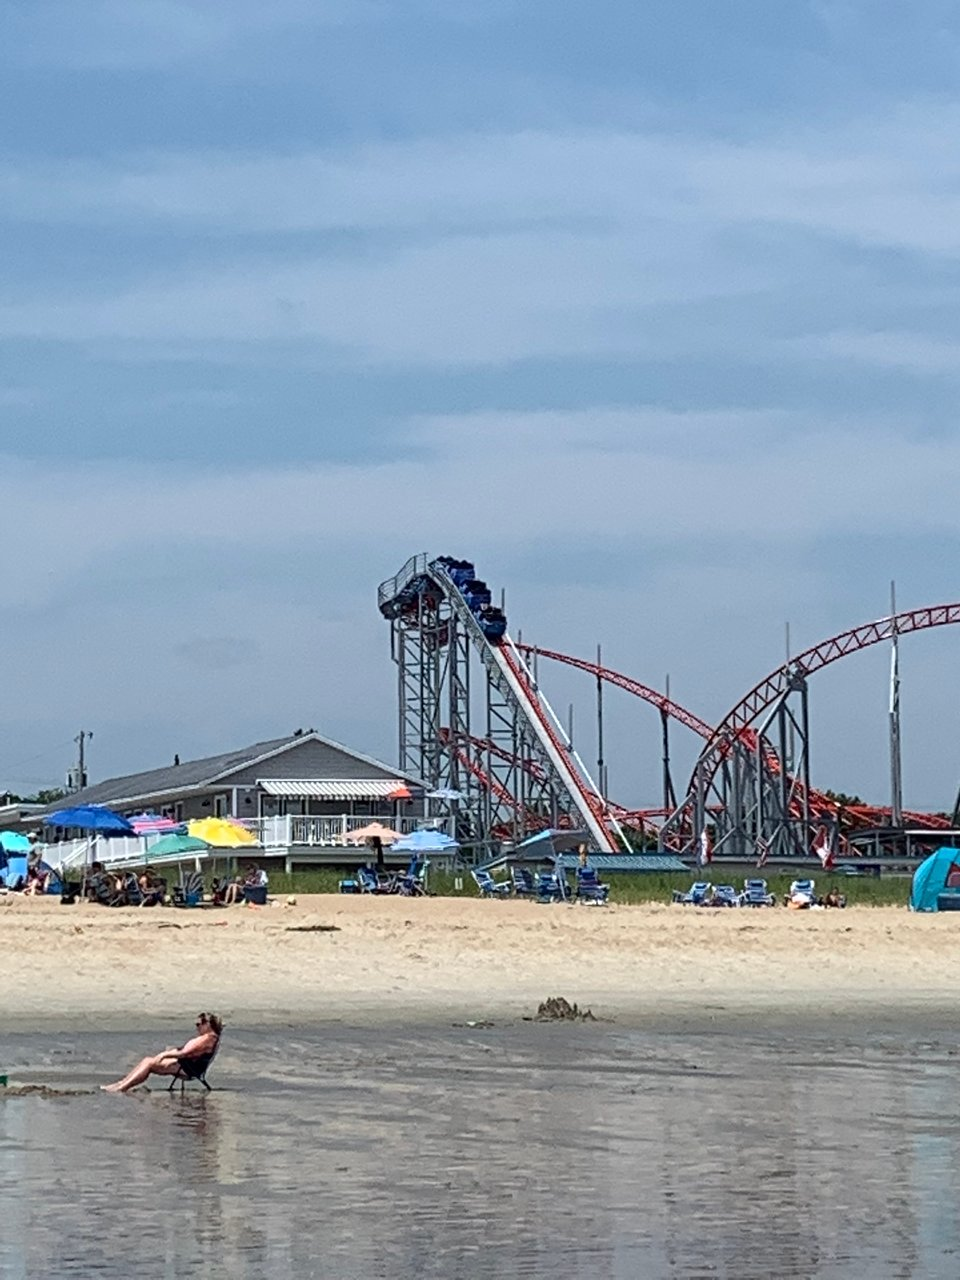 Old Orchard Beach 2020 All You Need